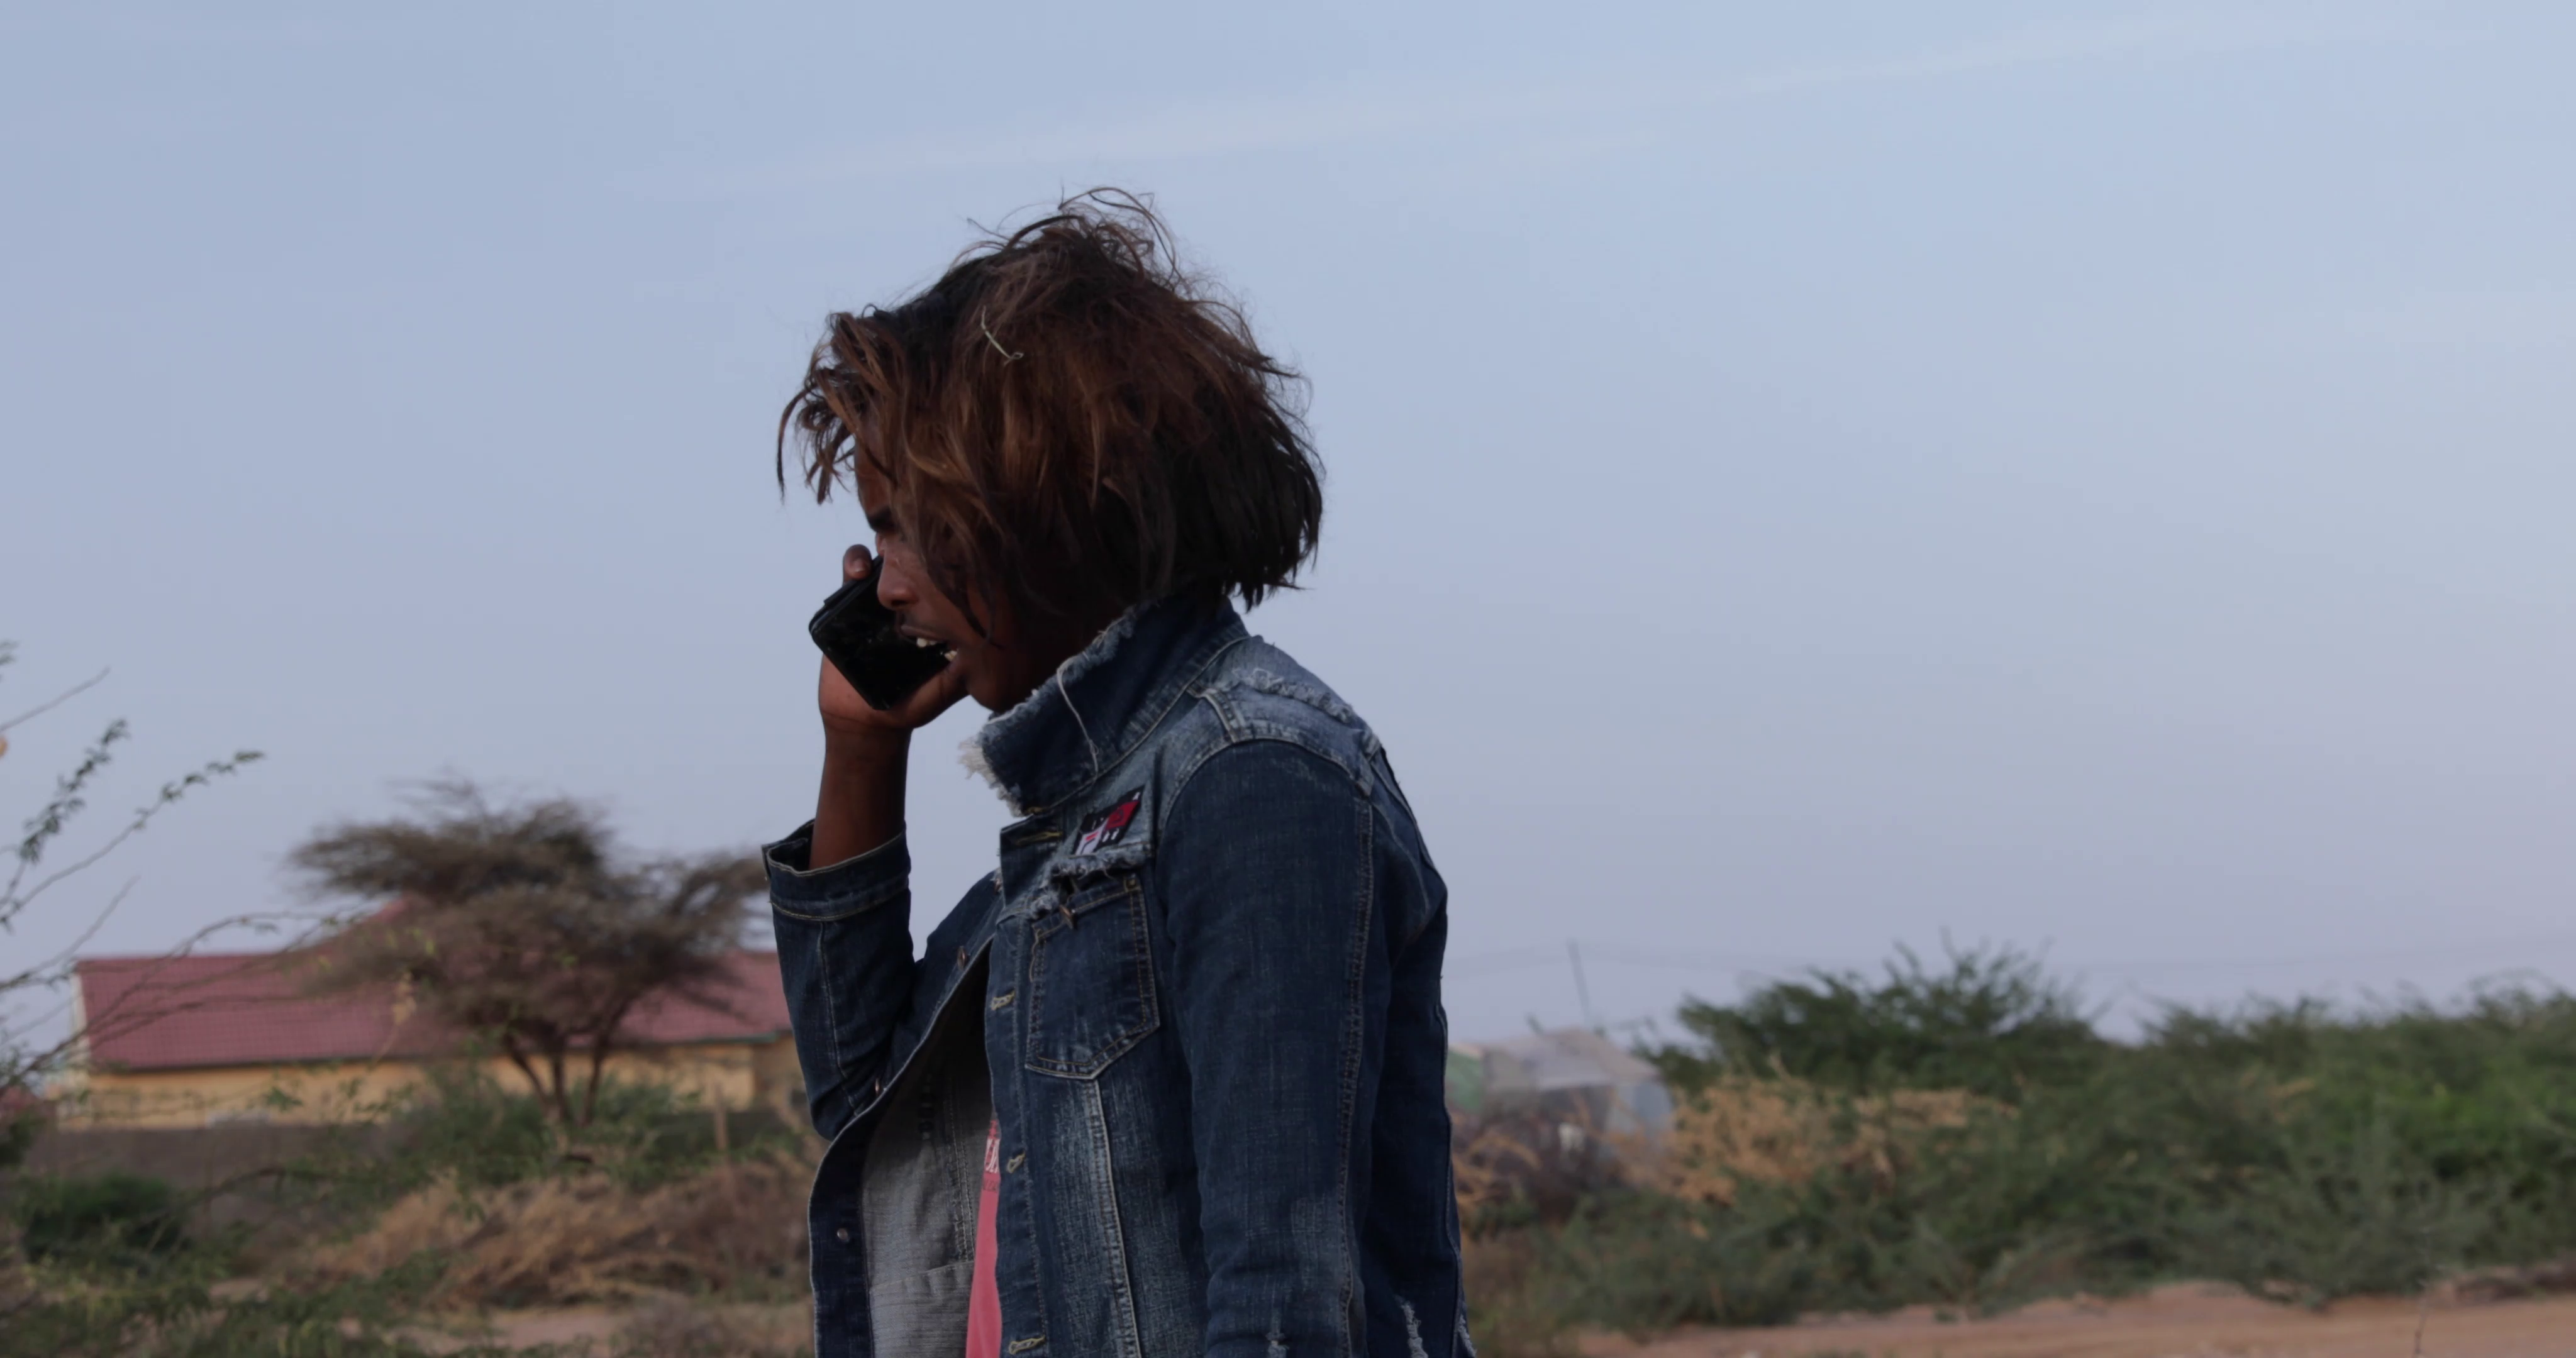 Somali returnees produce a film which re-enacts their experiences travelling to Libya irregularly and showcases the dangers of their journey. The returnees hope that by showing this film  locally that it raises awareness to the dangerous of irregular migration.